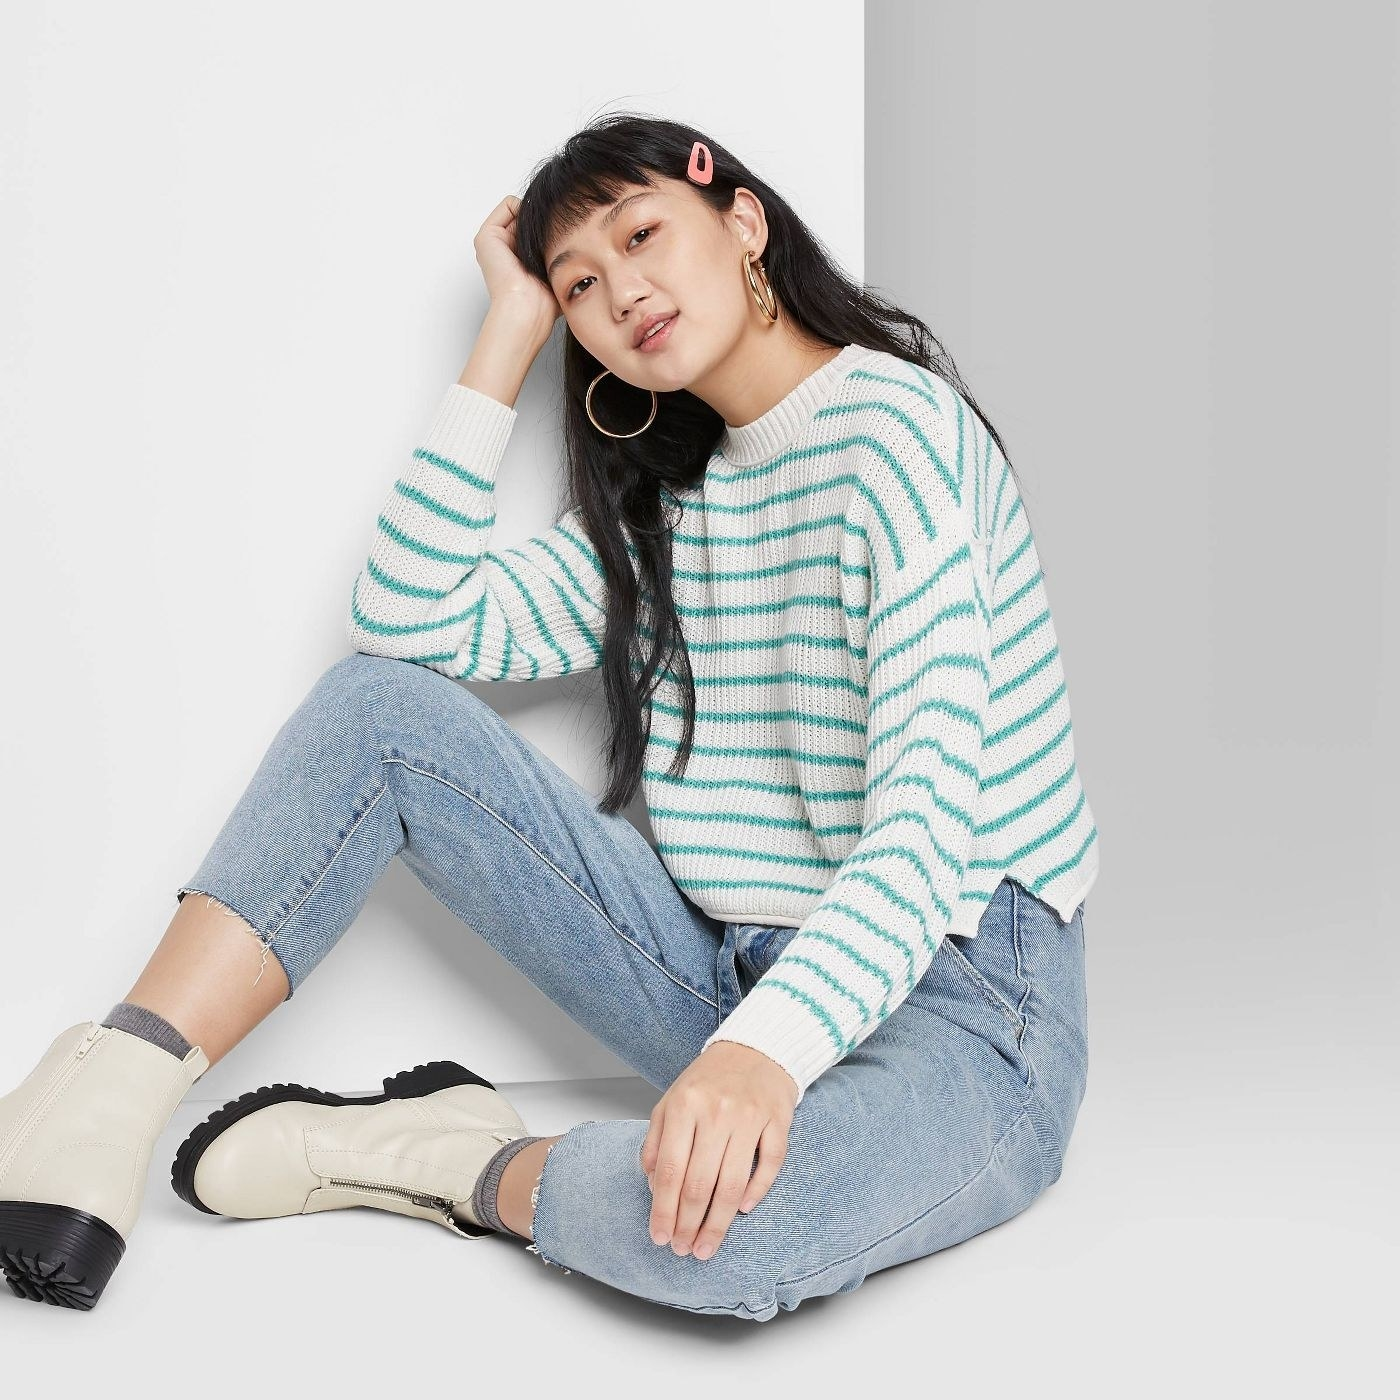 model wearing striped pullover